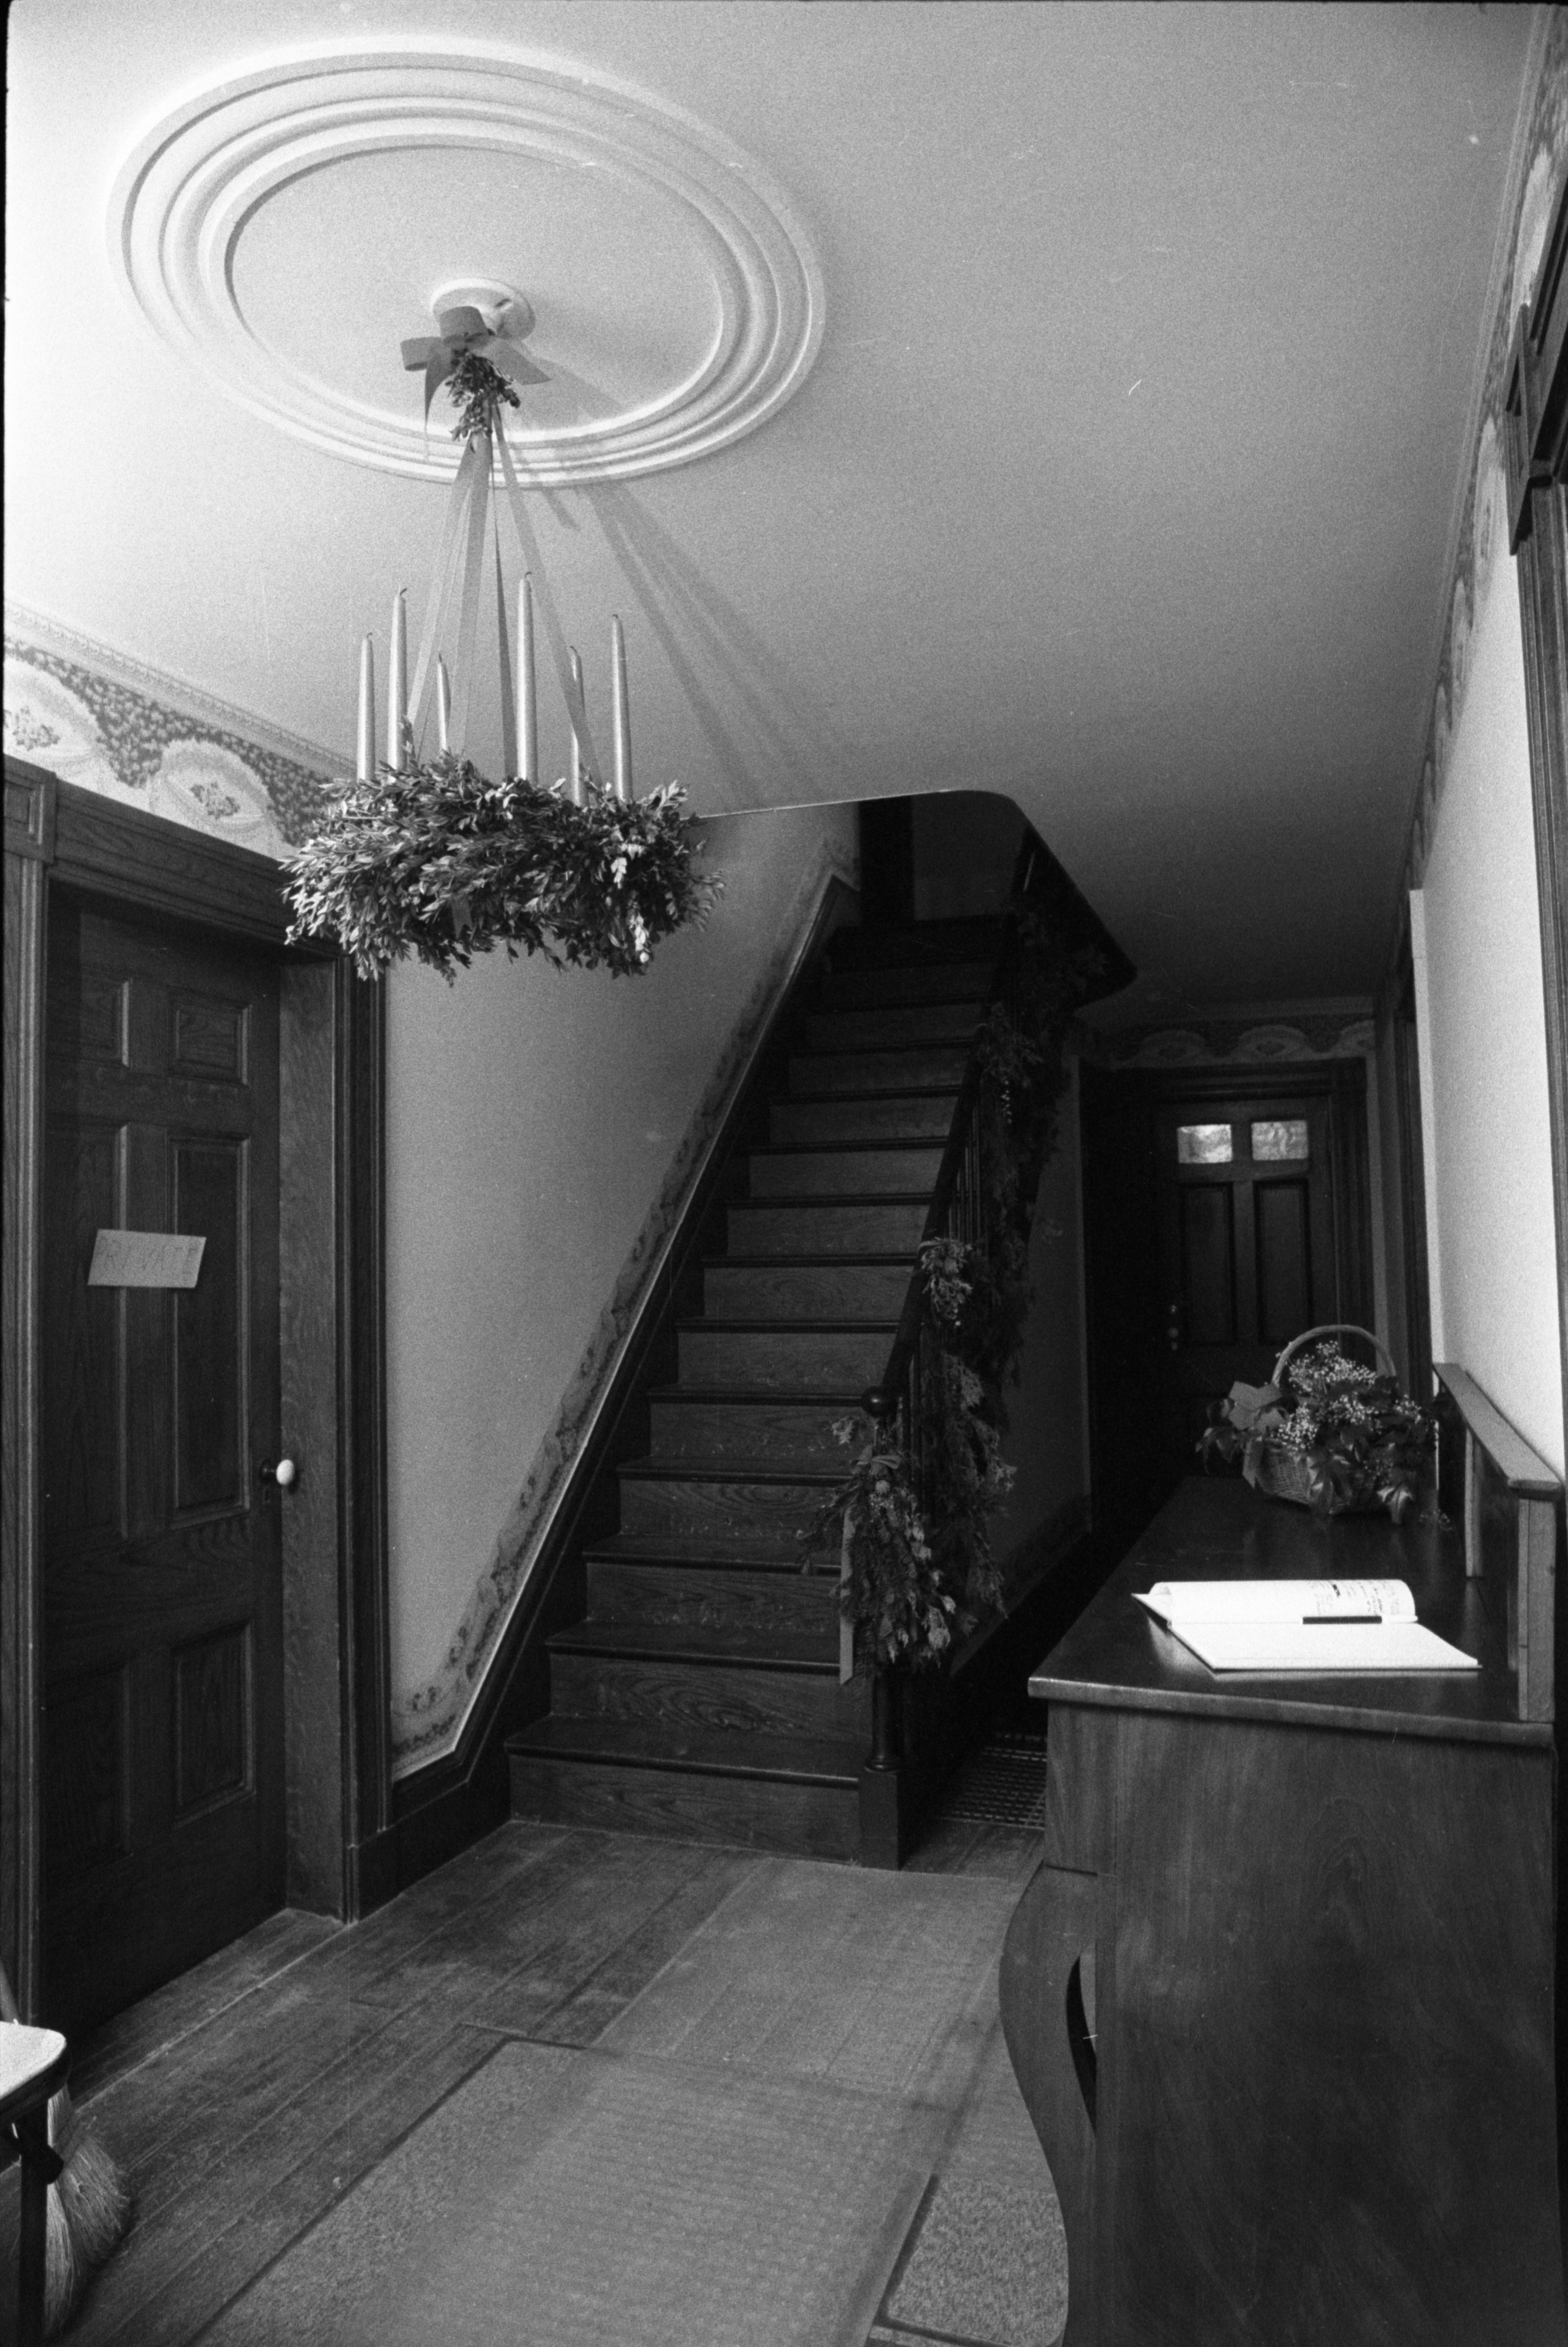 Stairway Adorned With Christmas Decorations  At Cobblestone Farmhouse, December 22, 1980 image